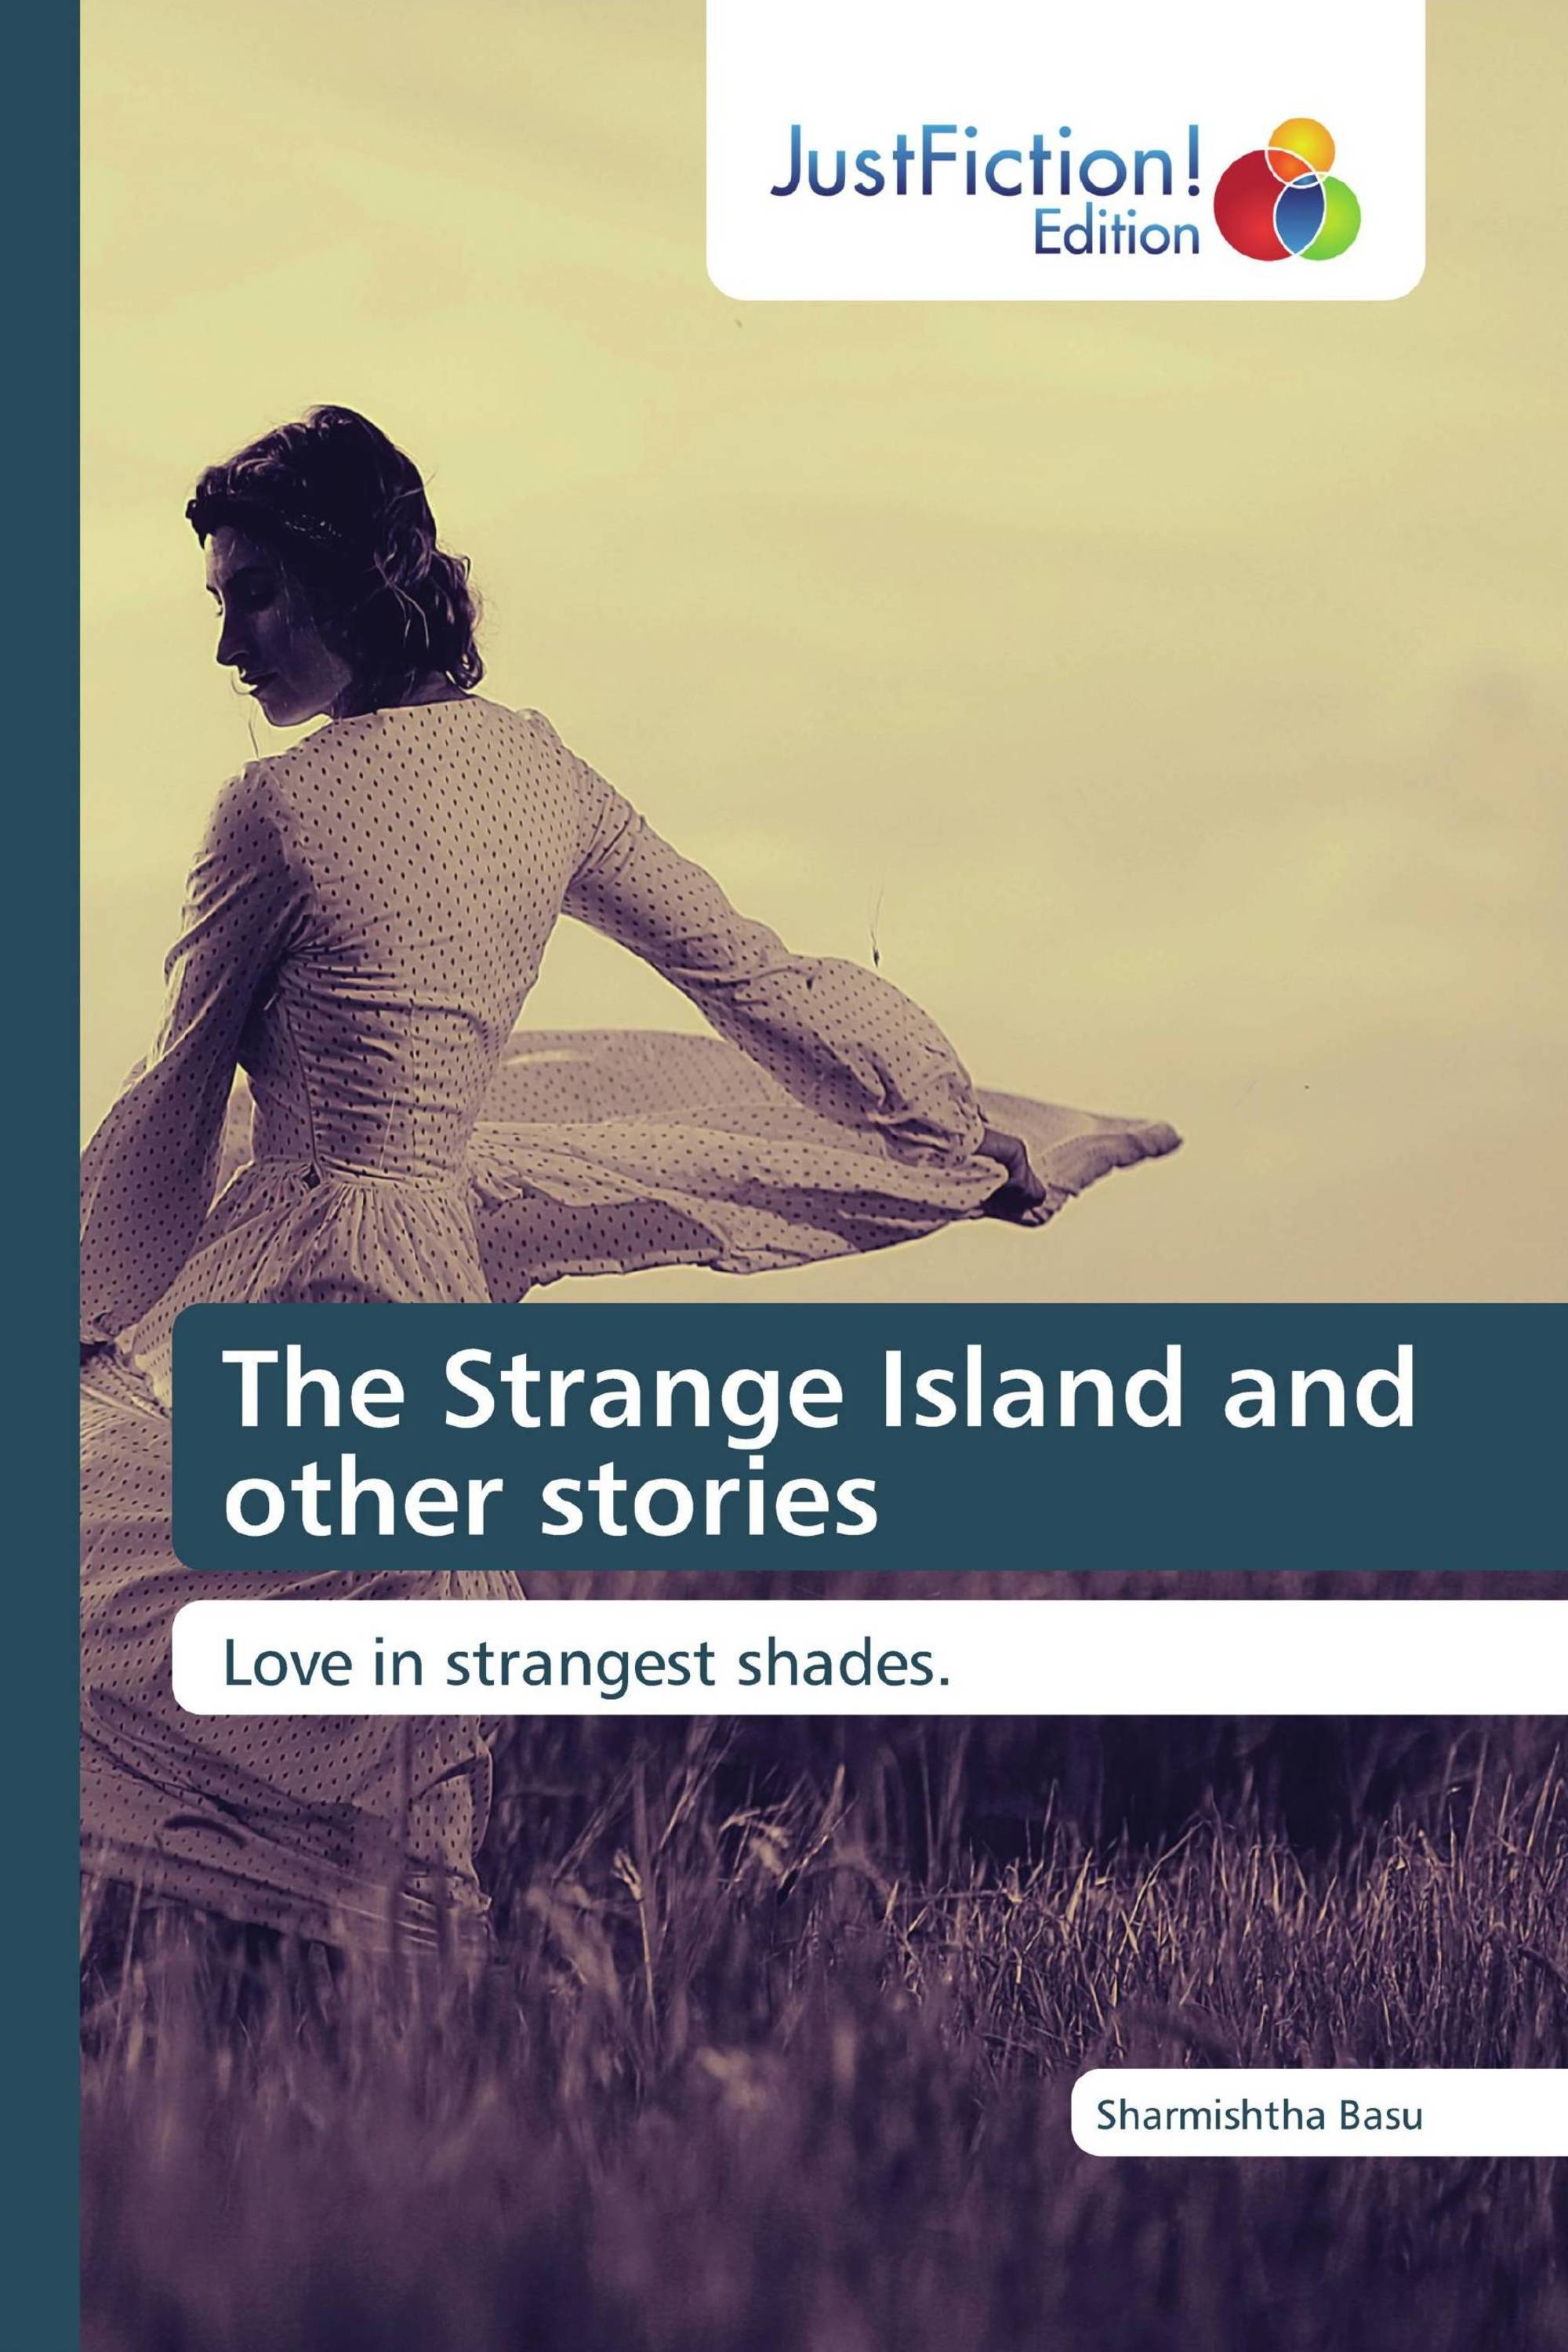 The Strange Island and other stories